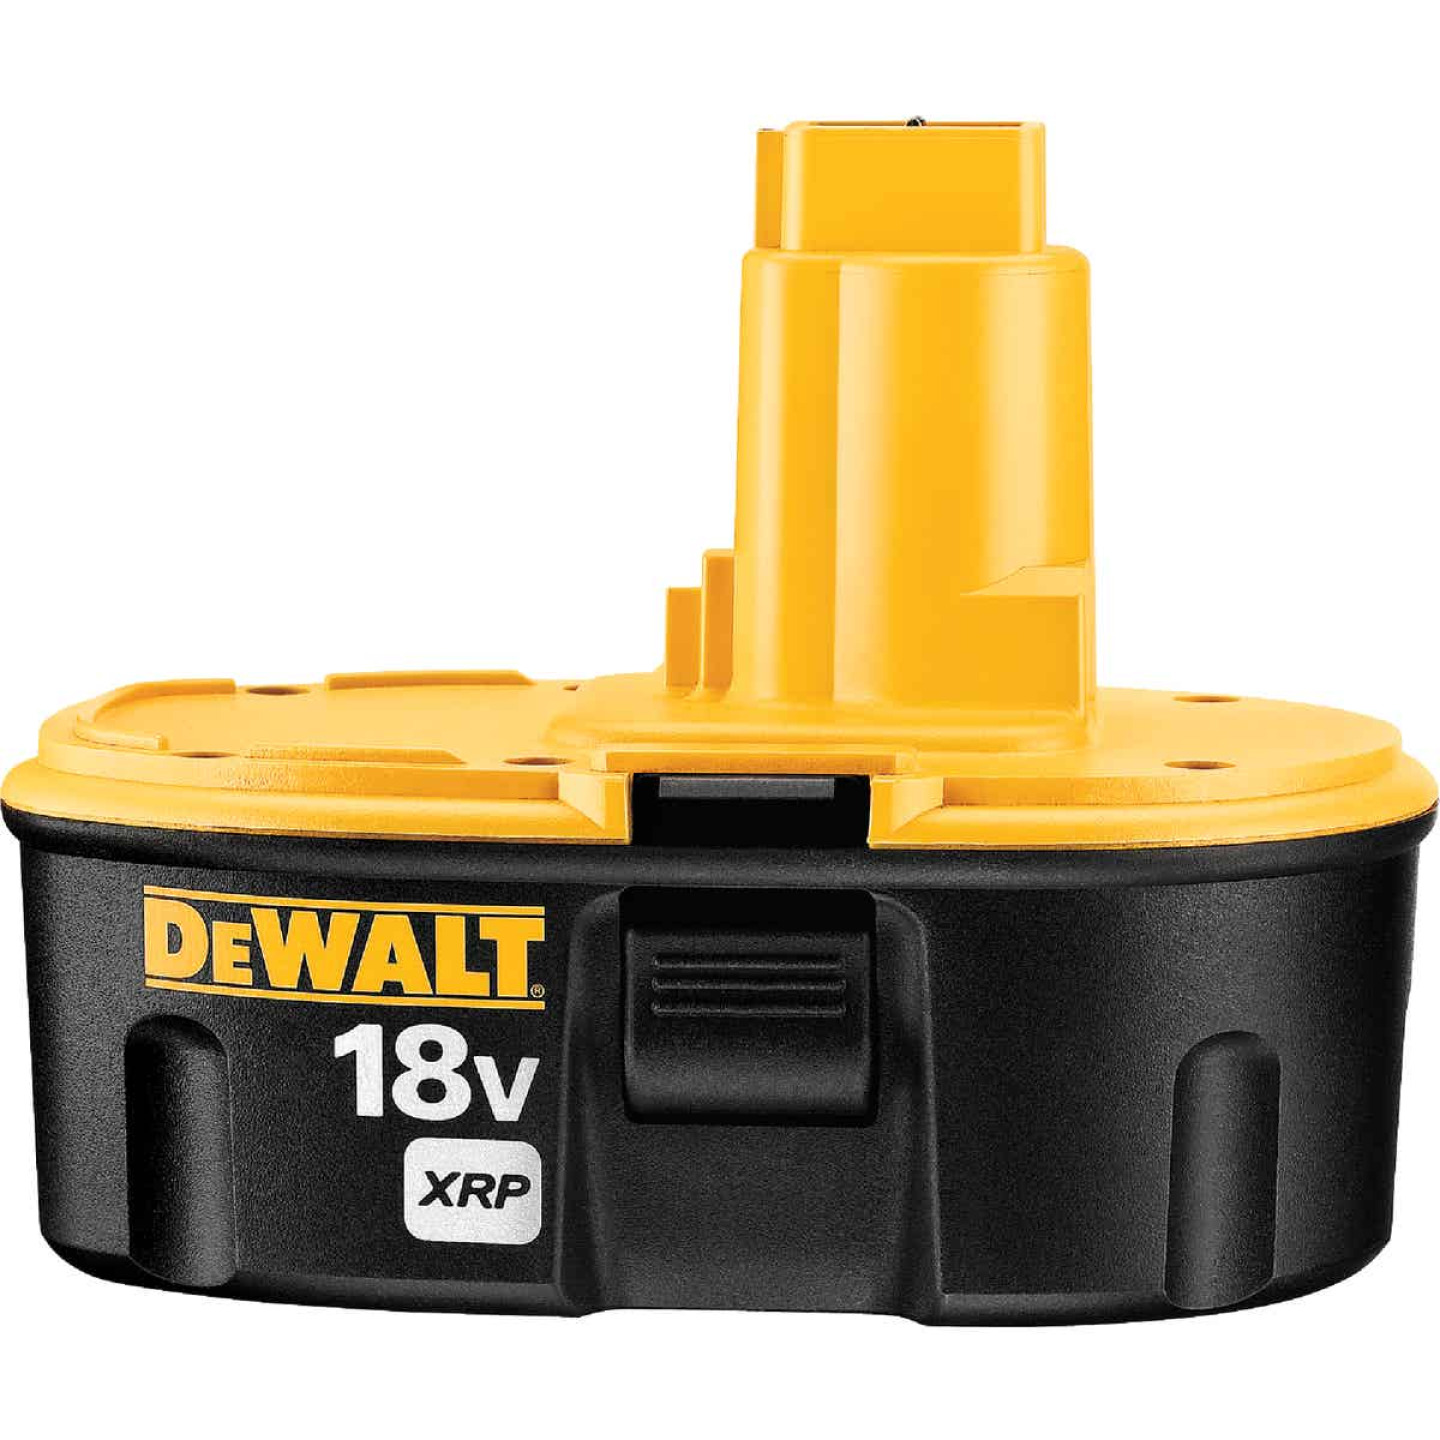 DeWalt 18 Volt XRP Nickel-Cadmium 2.4 Ah Tool Battery Image 1